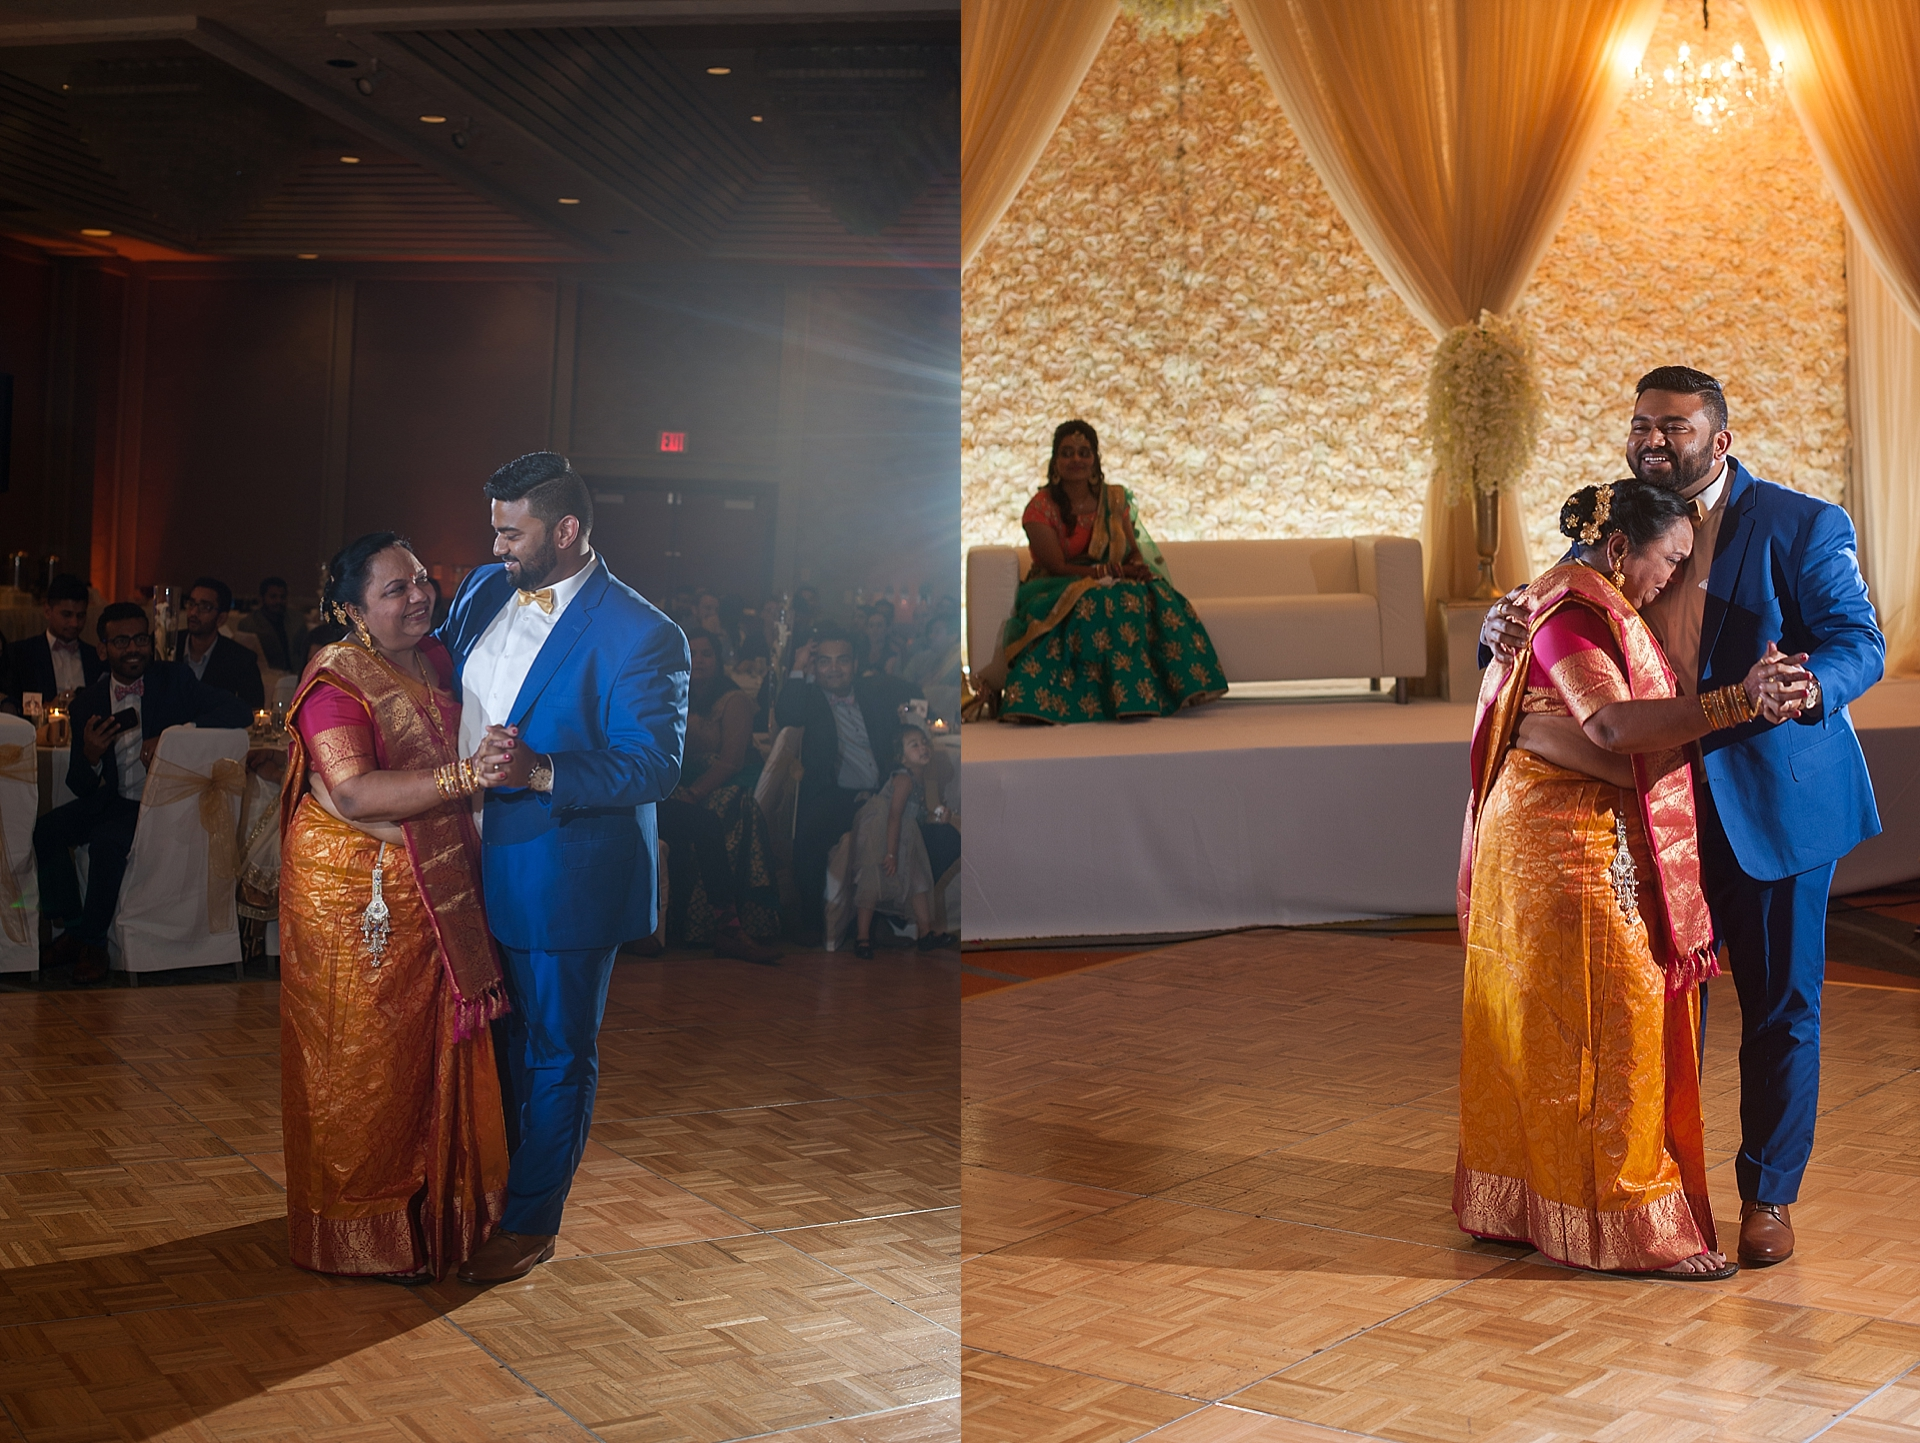 Prexa_Harry_Columbus_Crown_Plaza_Indian_Wedding0108.jpg